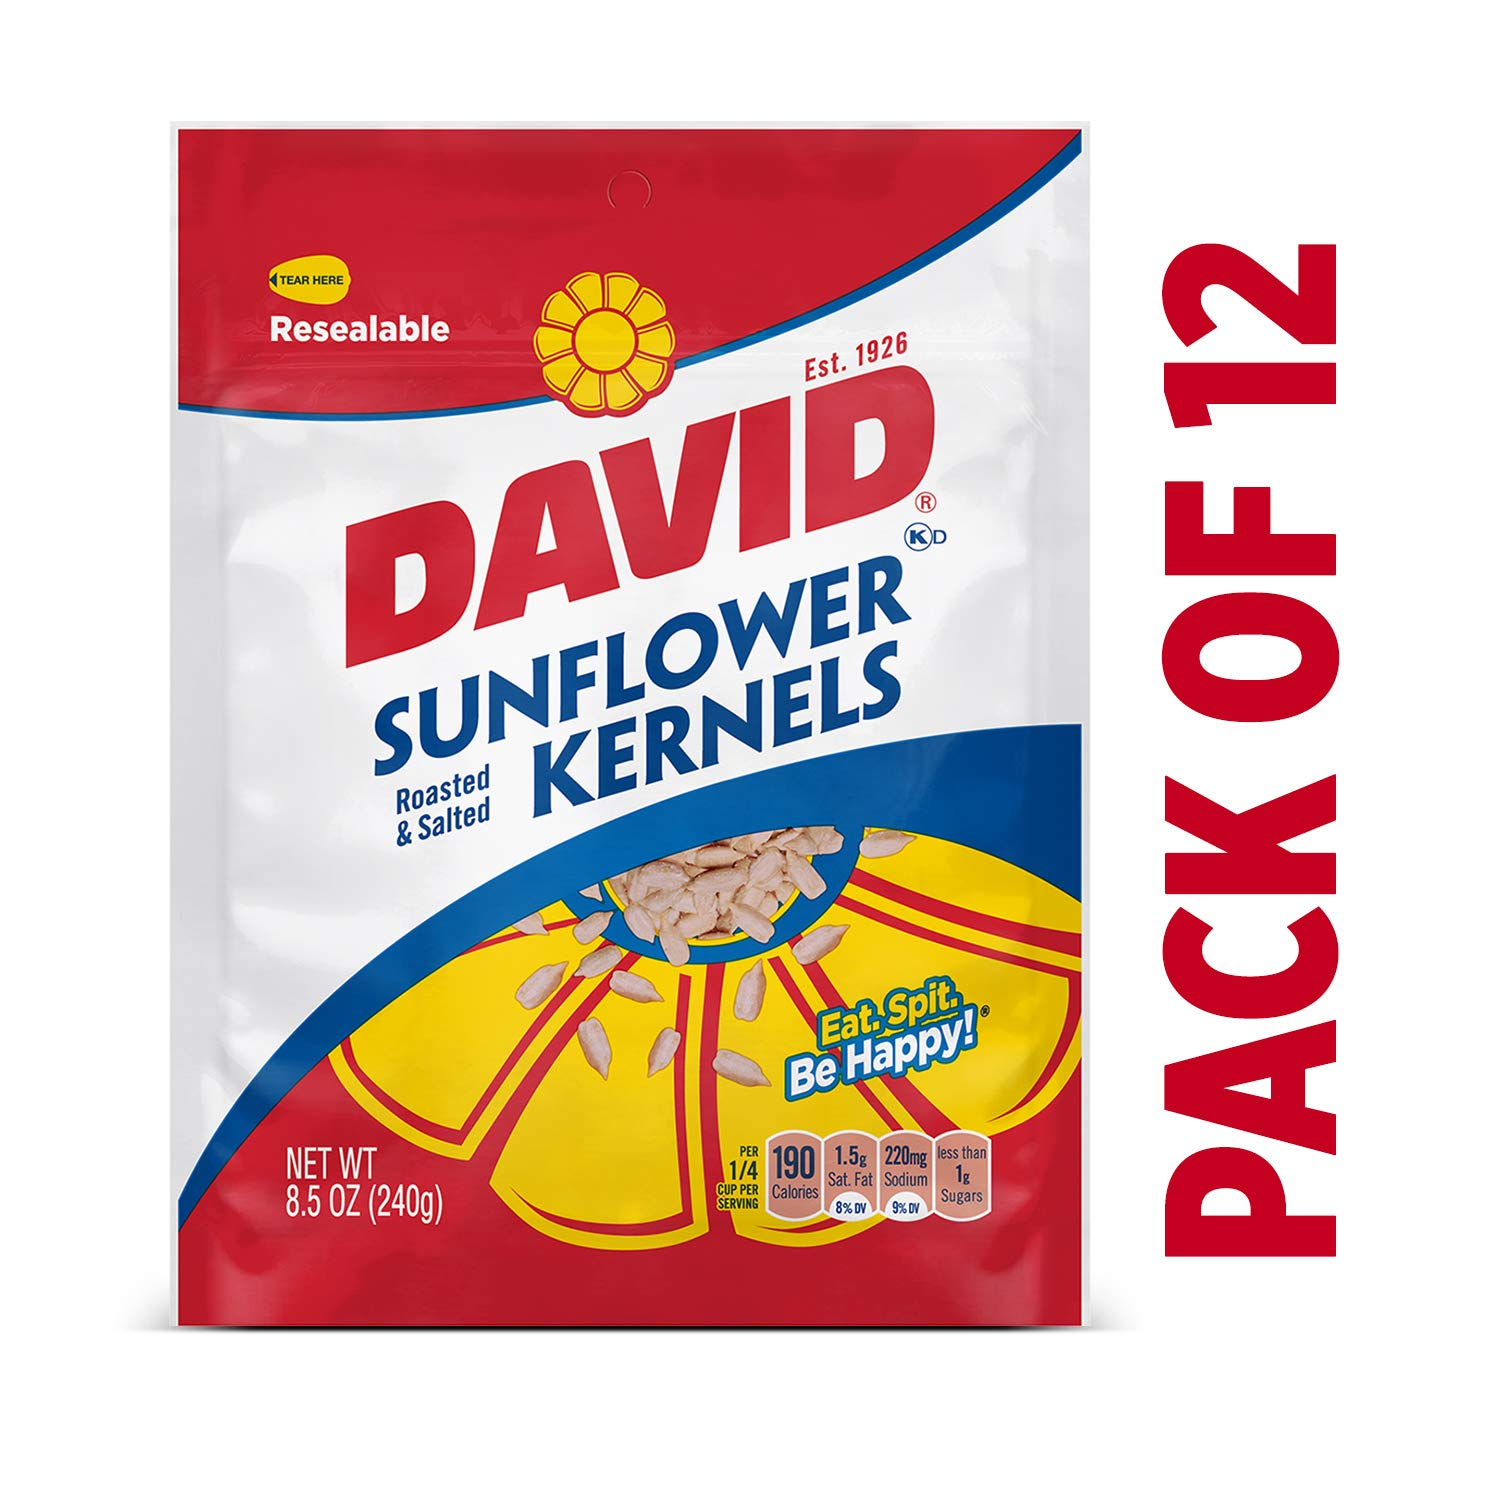 DAVID Roasted and Salted Original Sunflower Kernels, 8.5 oz, 12 Pack by DAVID Seeds